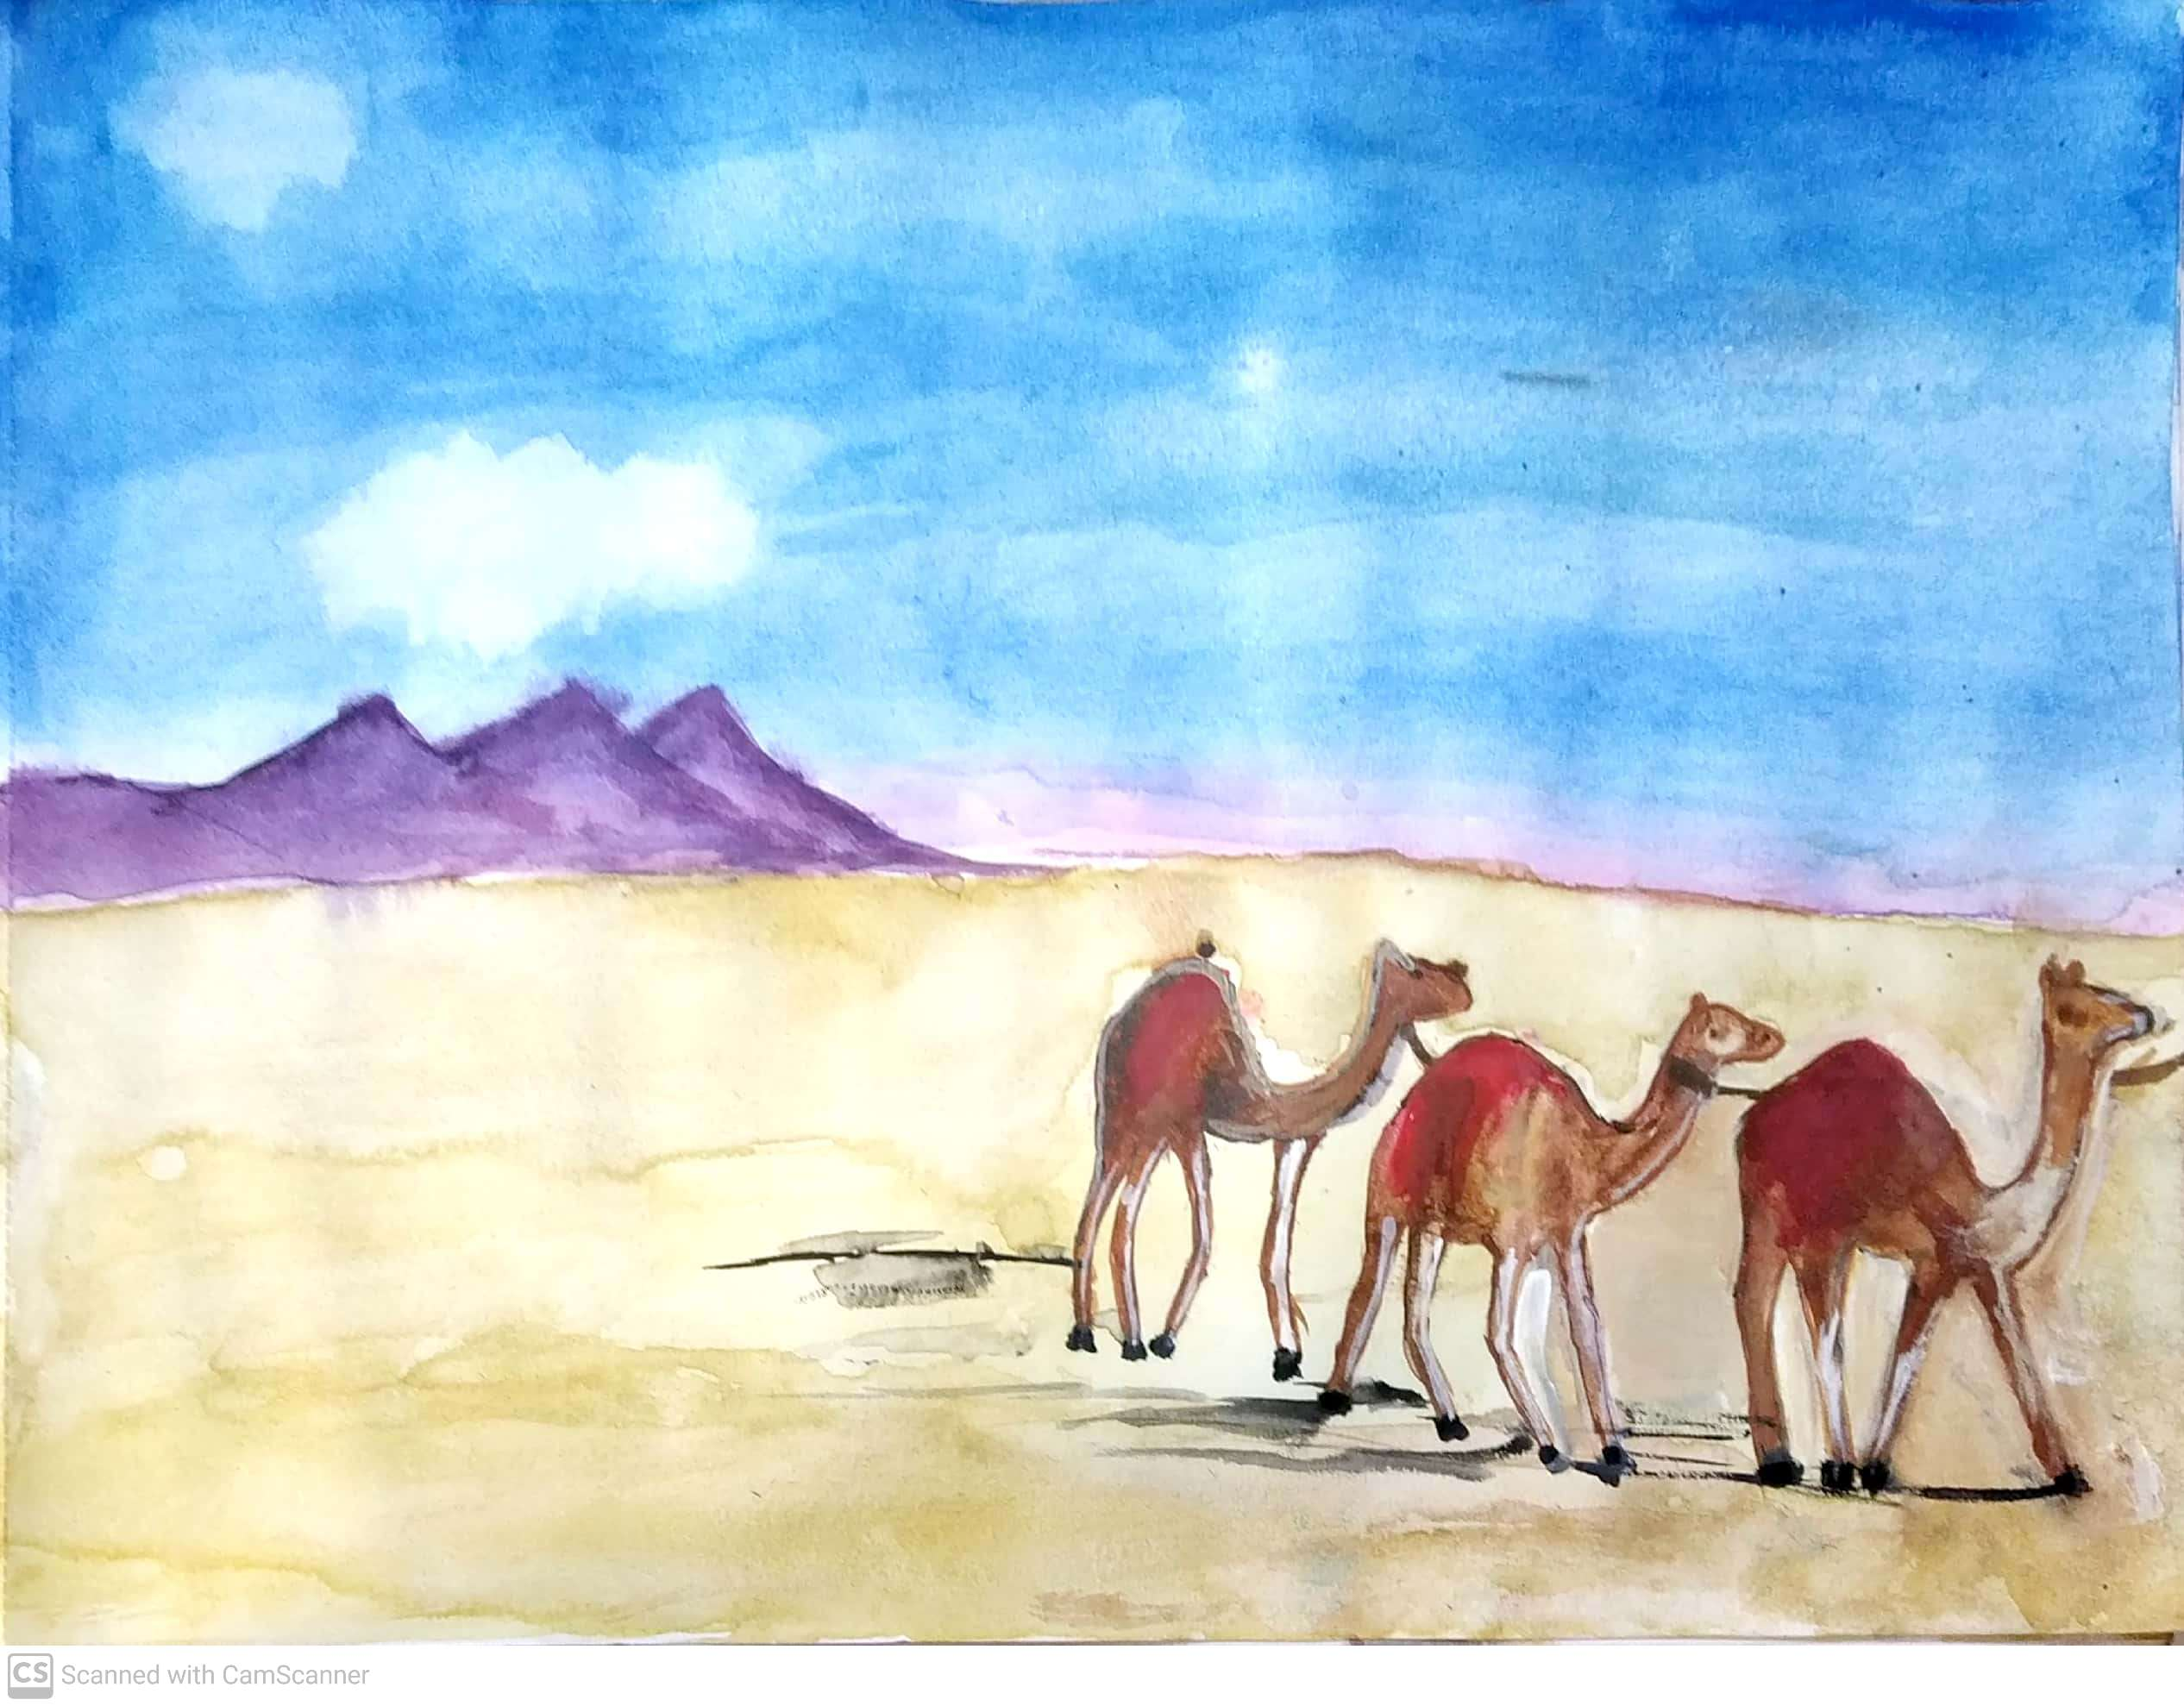 The ship of the desert explains the serenity of it by Manasvi Bordia